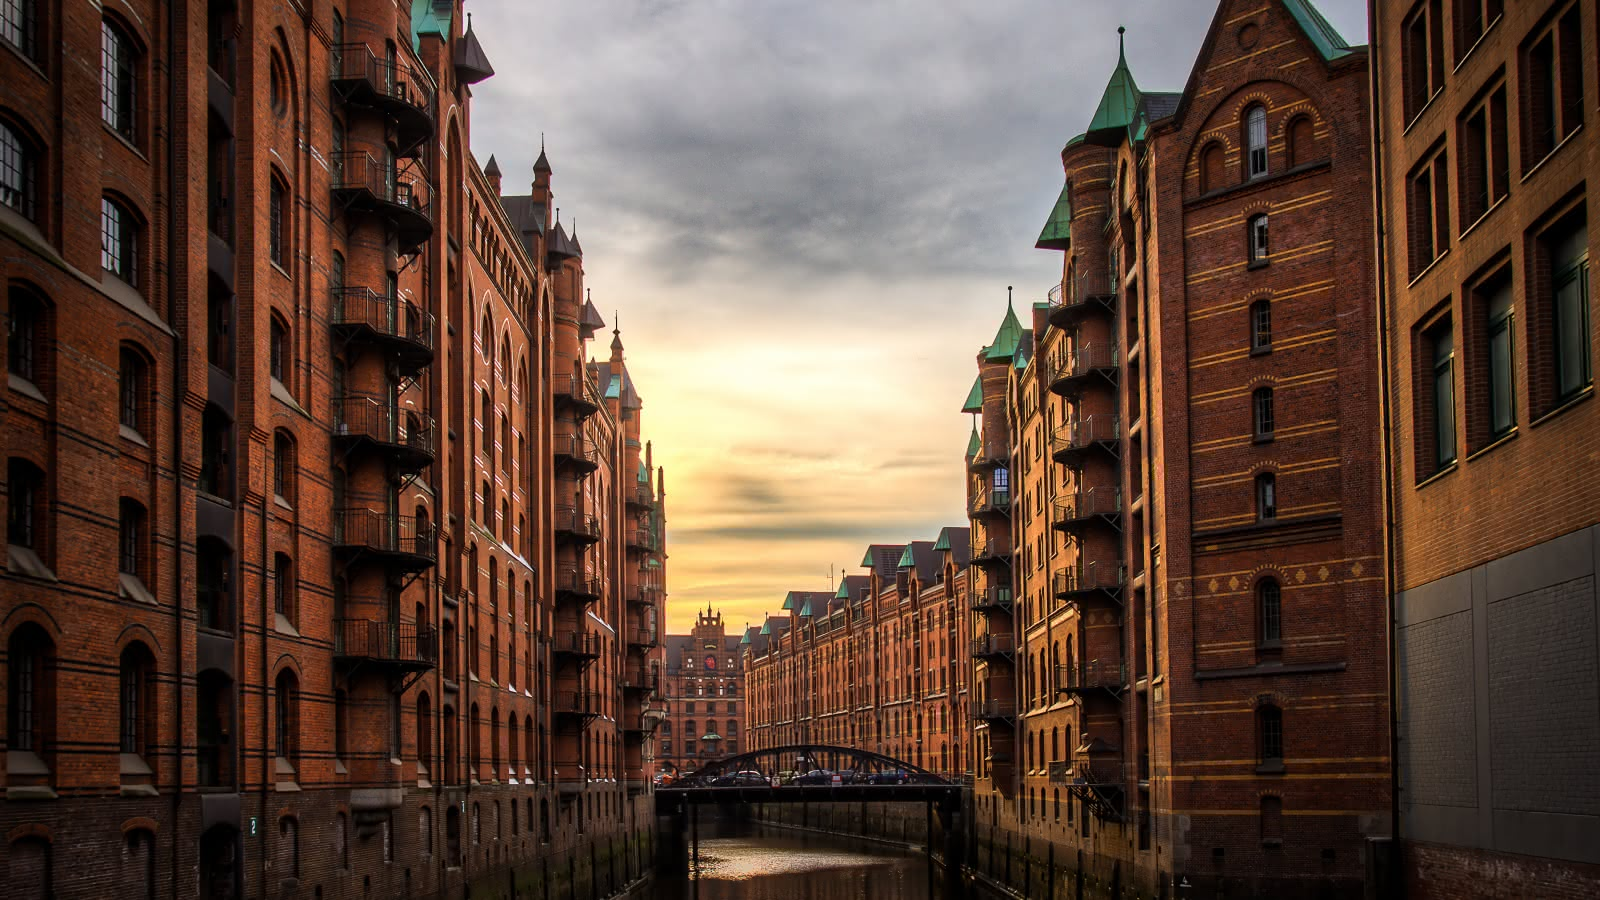 Hamburg warehouse district during the SANDEMANs Speicherstadt and HafenCity Tour